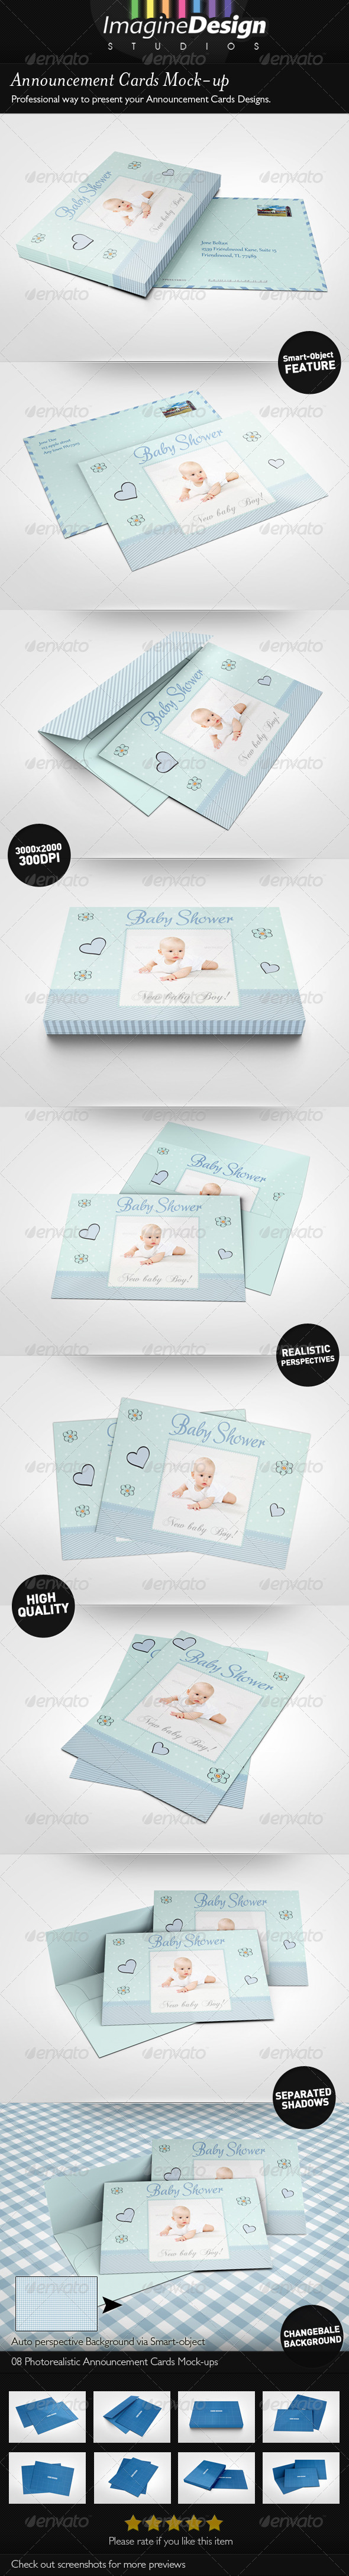 GraphicRiver Announcement Cards Mock-Ups 4703994